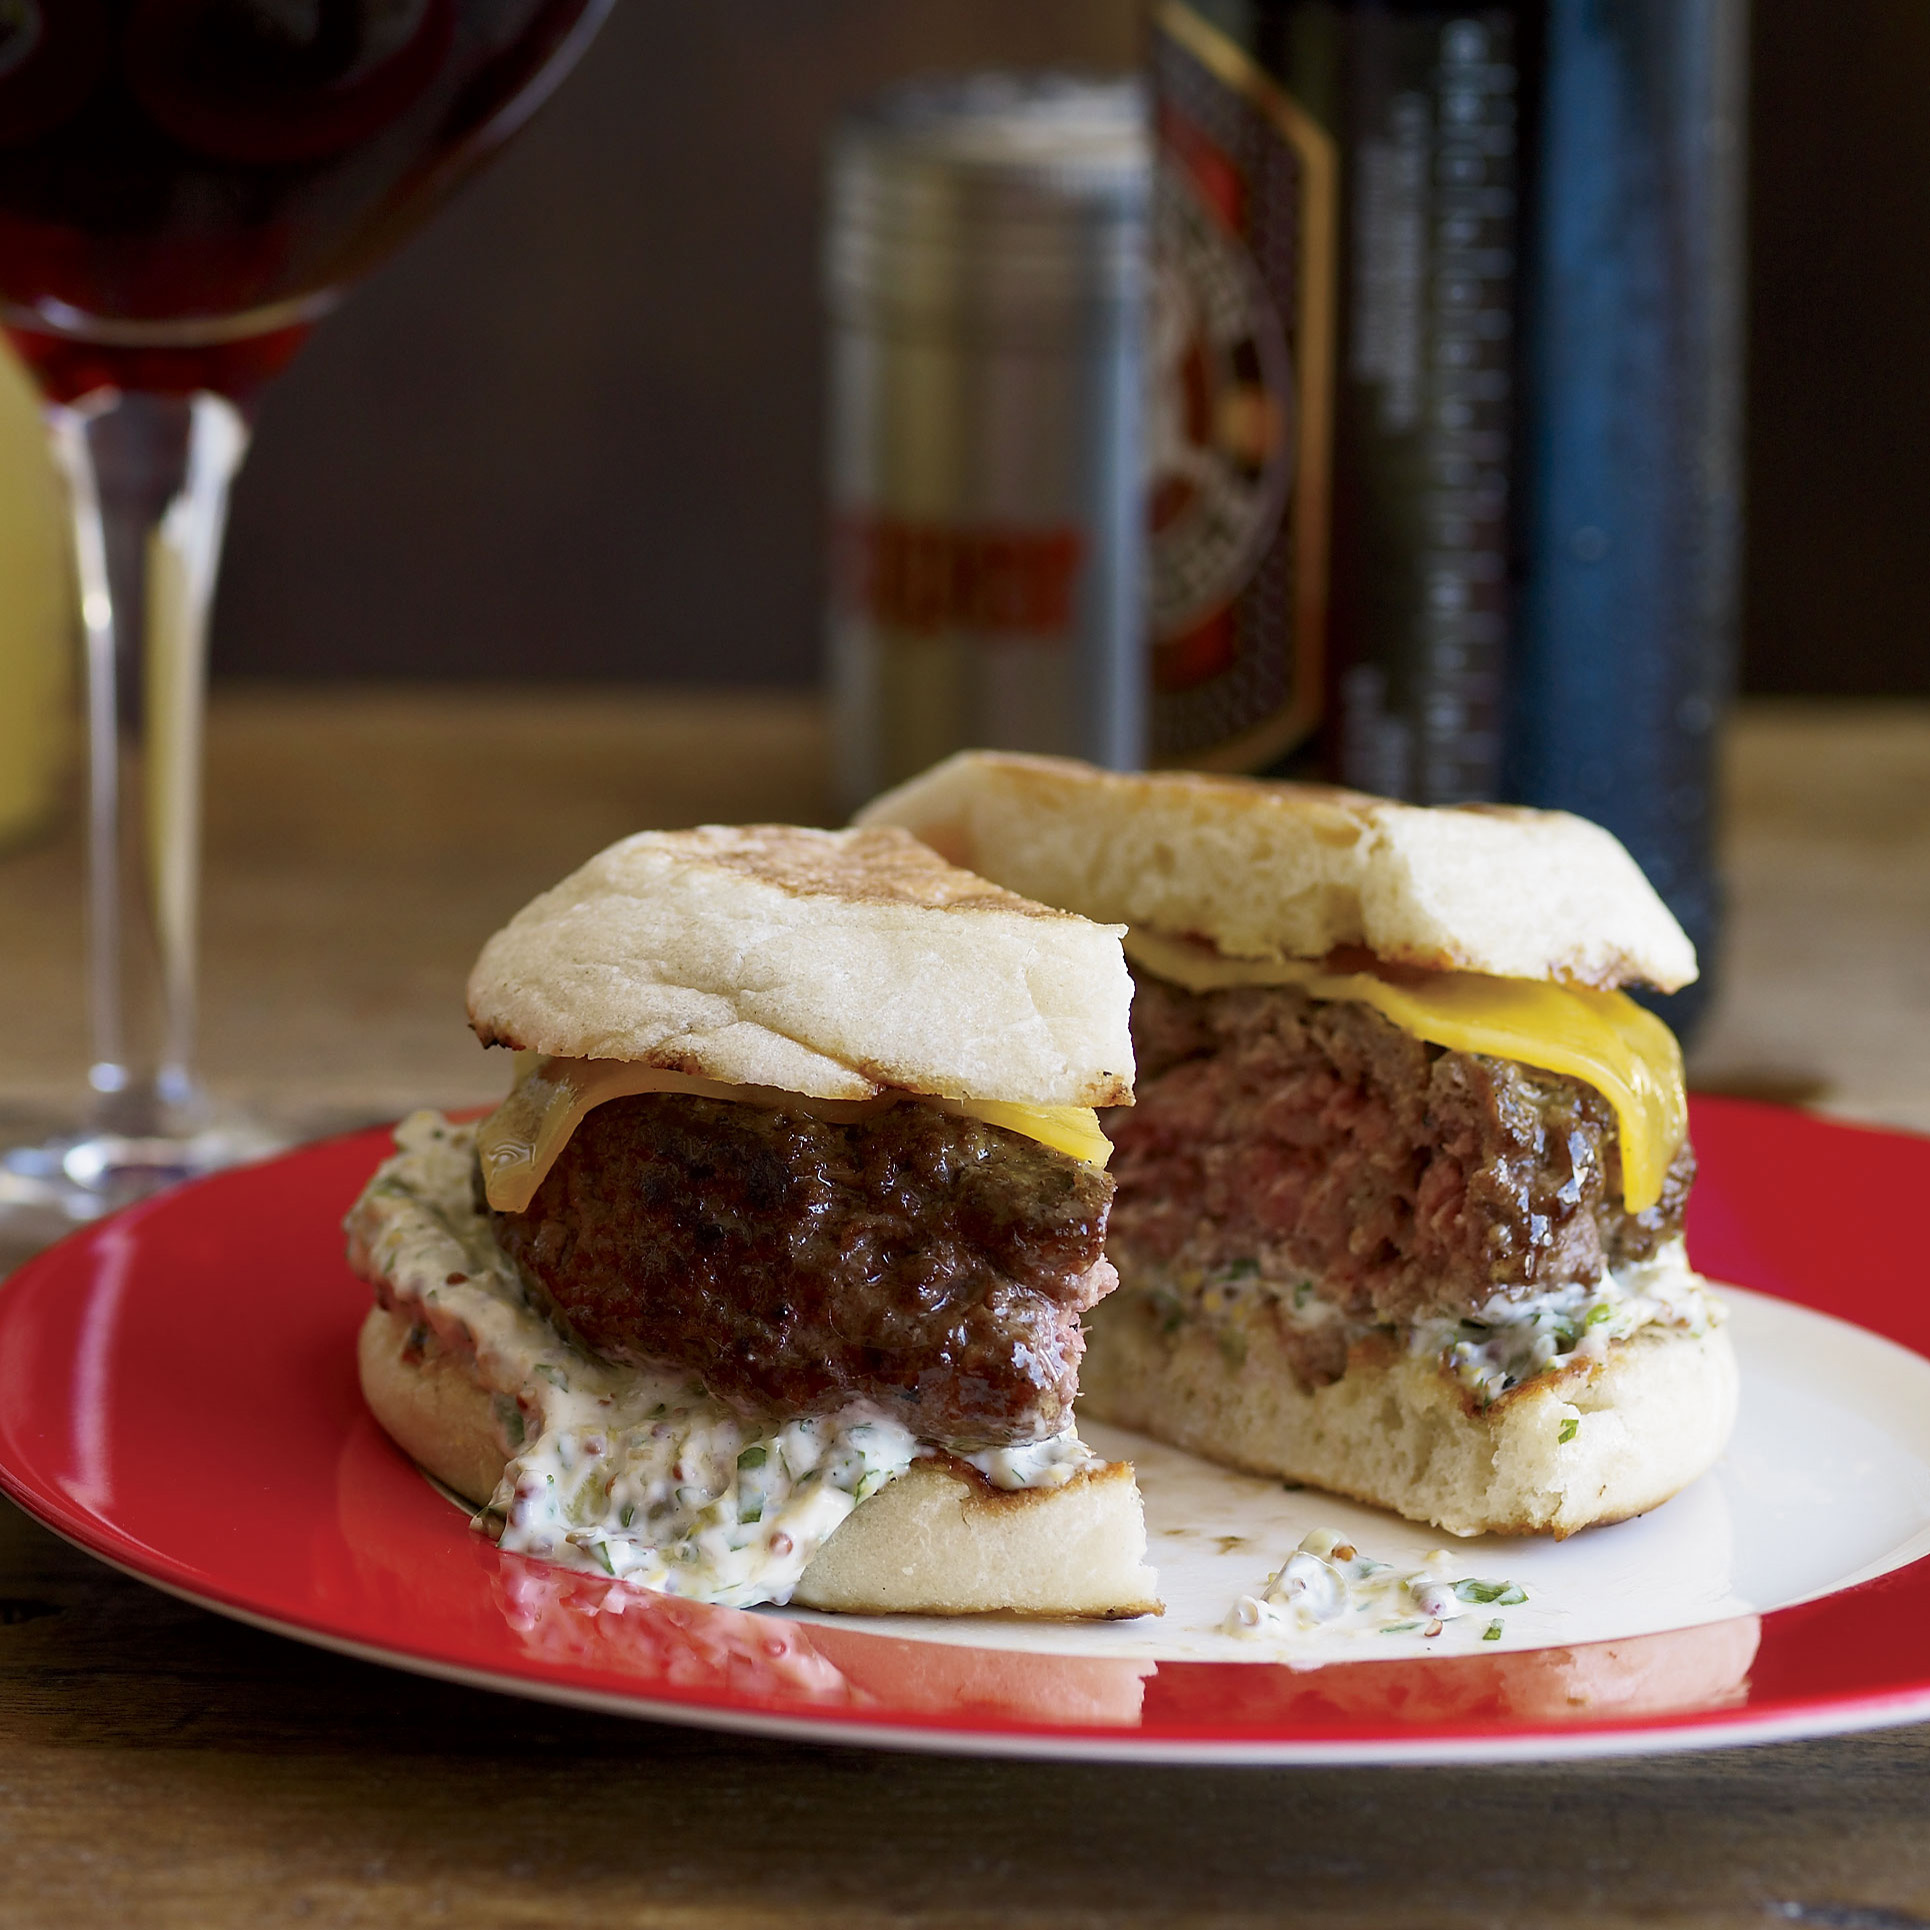 Beef-And-Lamb Burgers With Cheddar